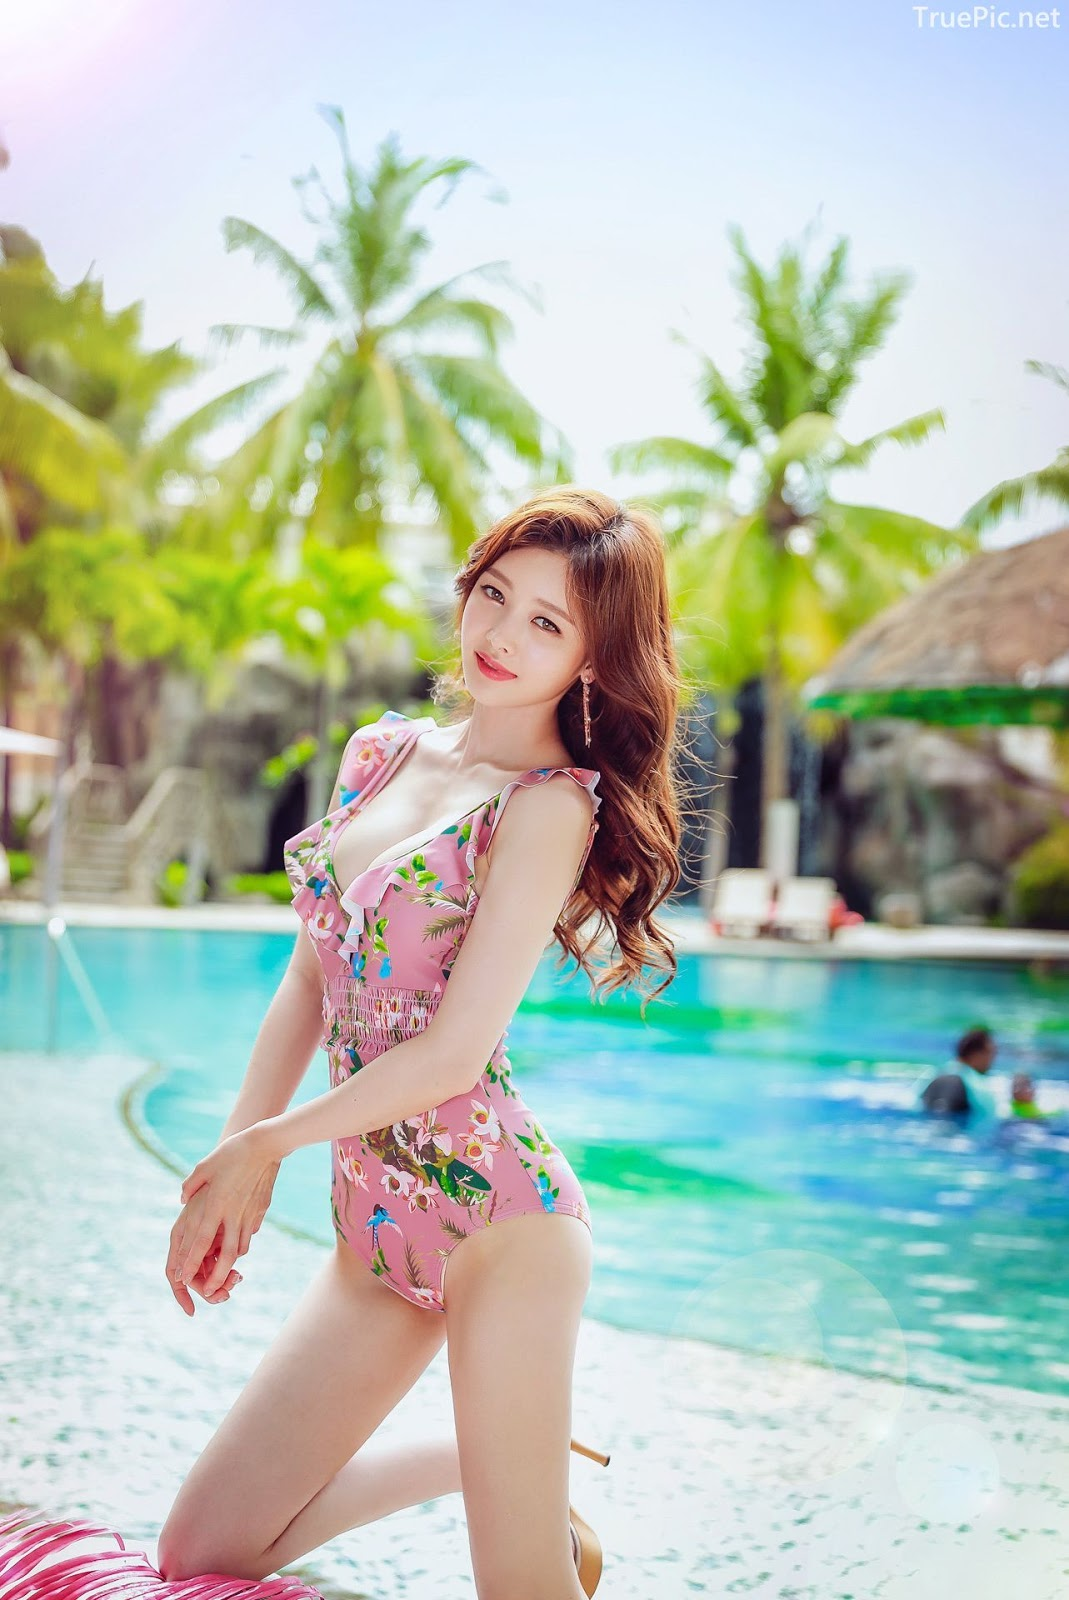 Korean lingerie queen model - Kim Hee Jeong - Floral Pink Swimsuit - Picture 6